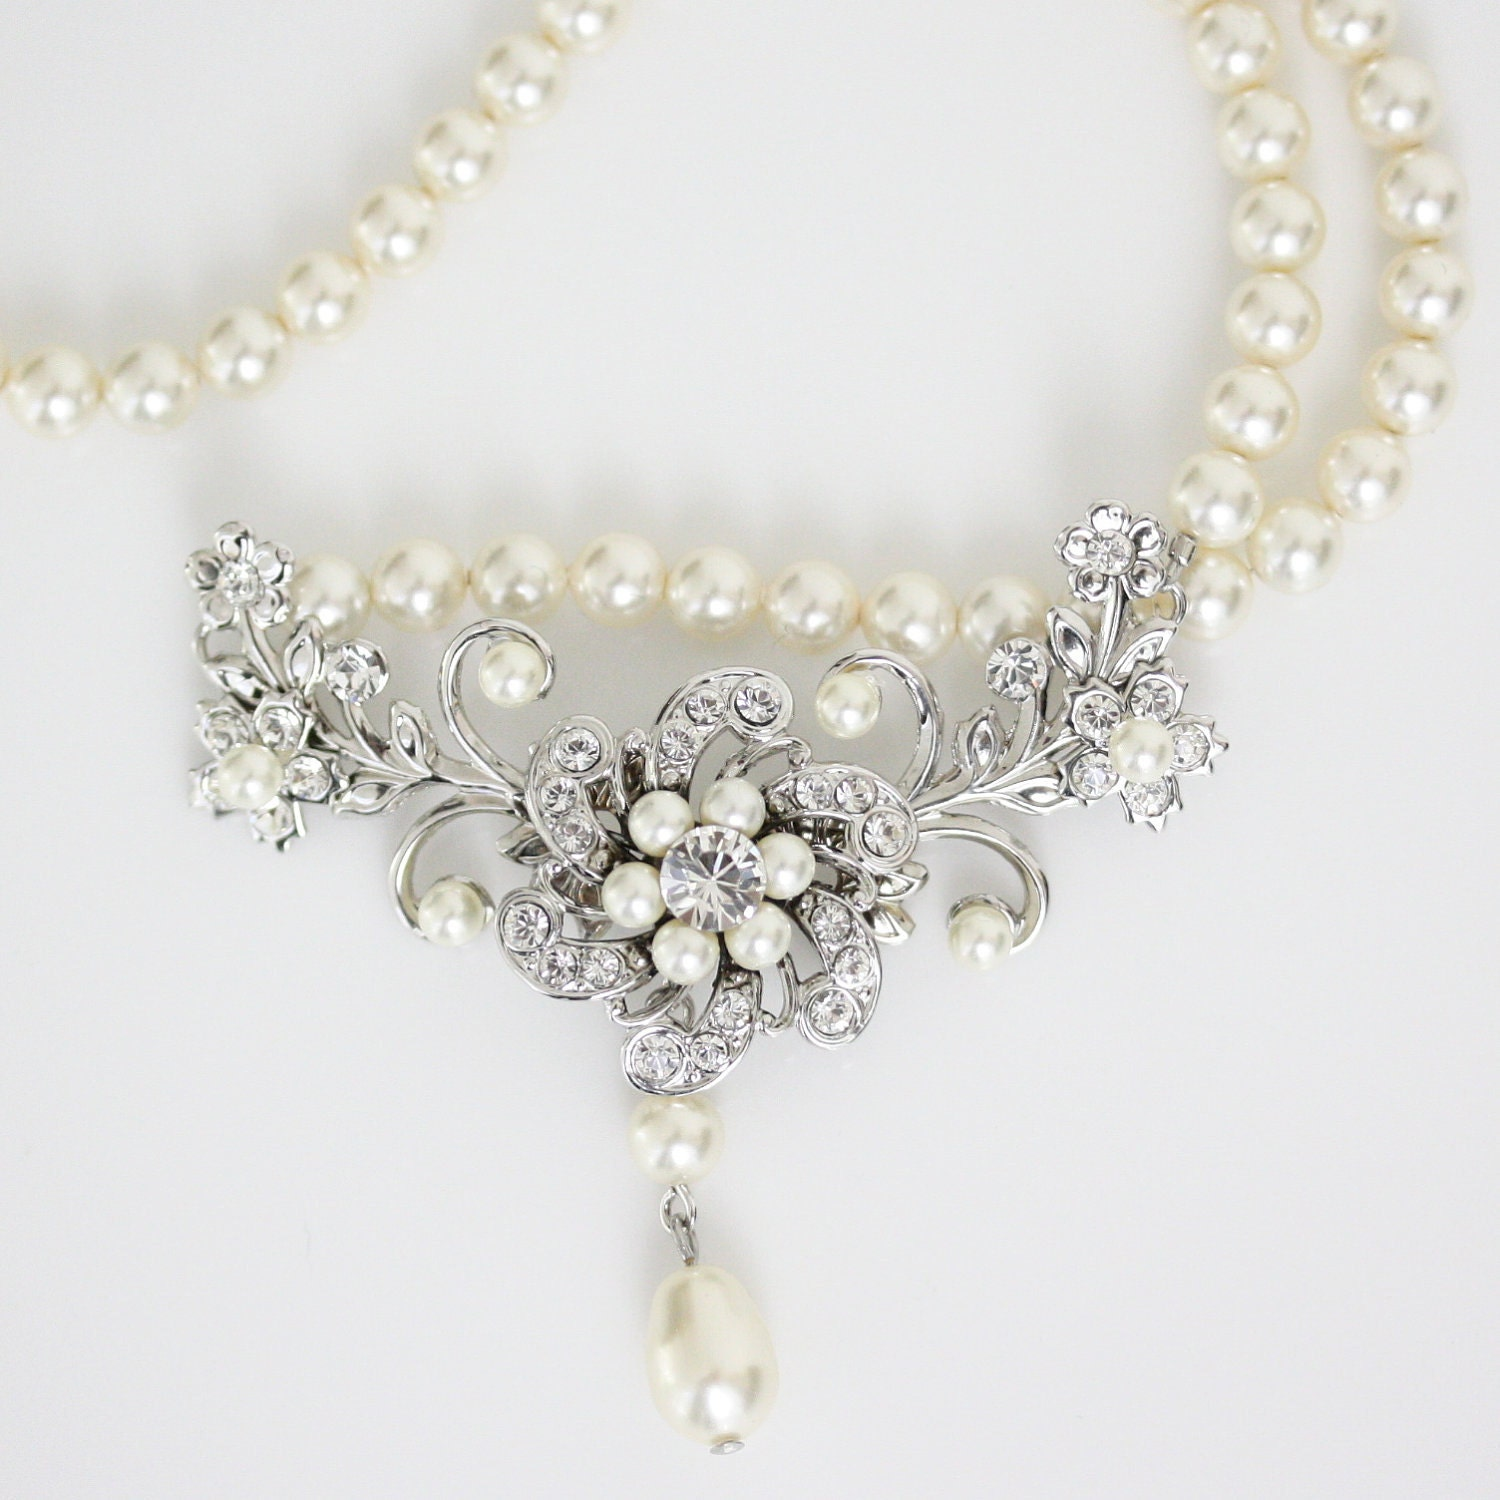 Wedding Jewelry Ivory Pearl Necklace Vintage By LuluSplendor